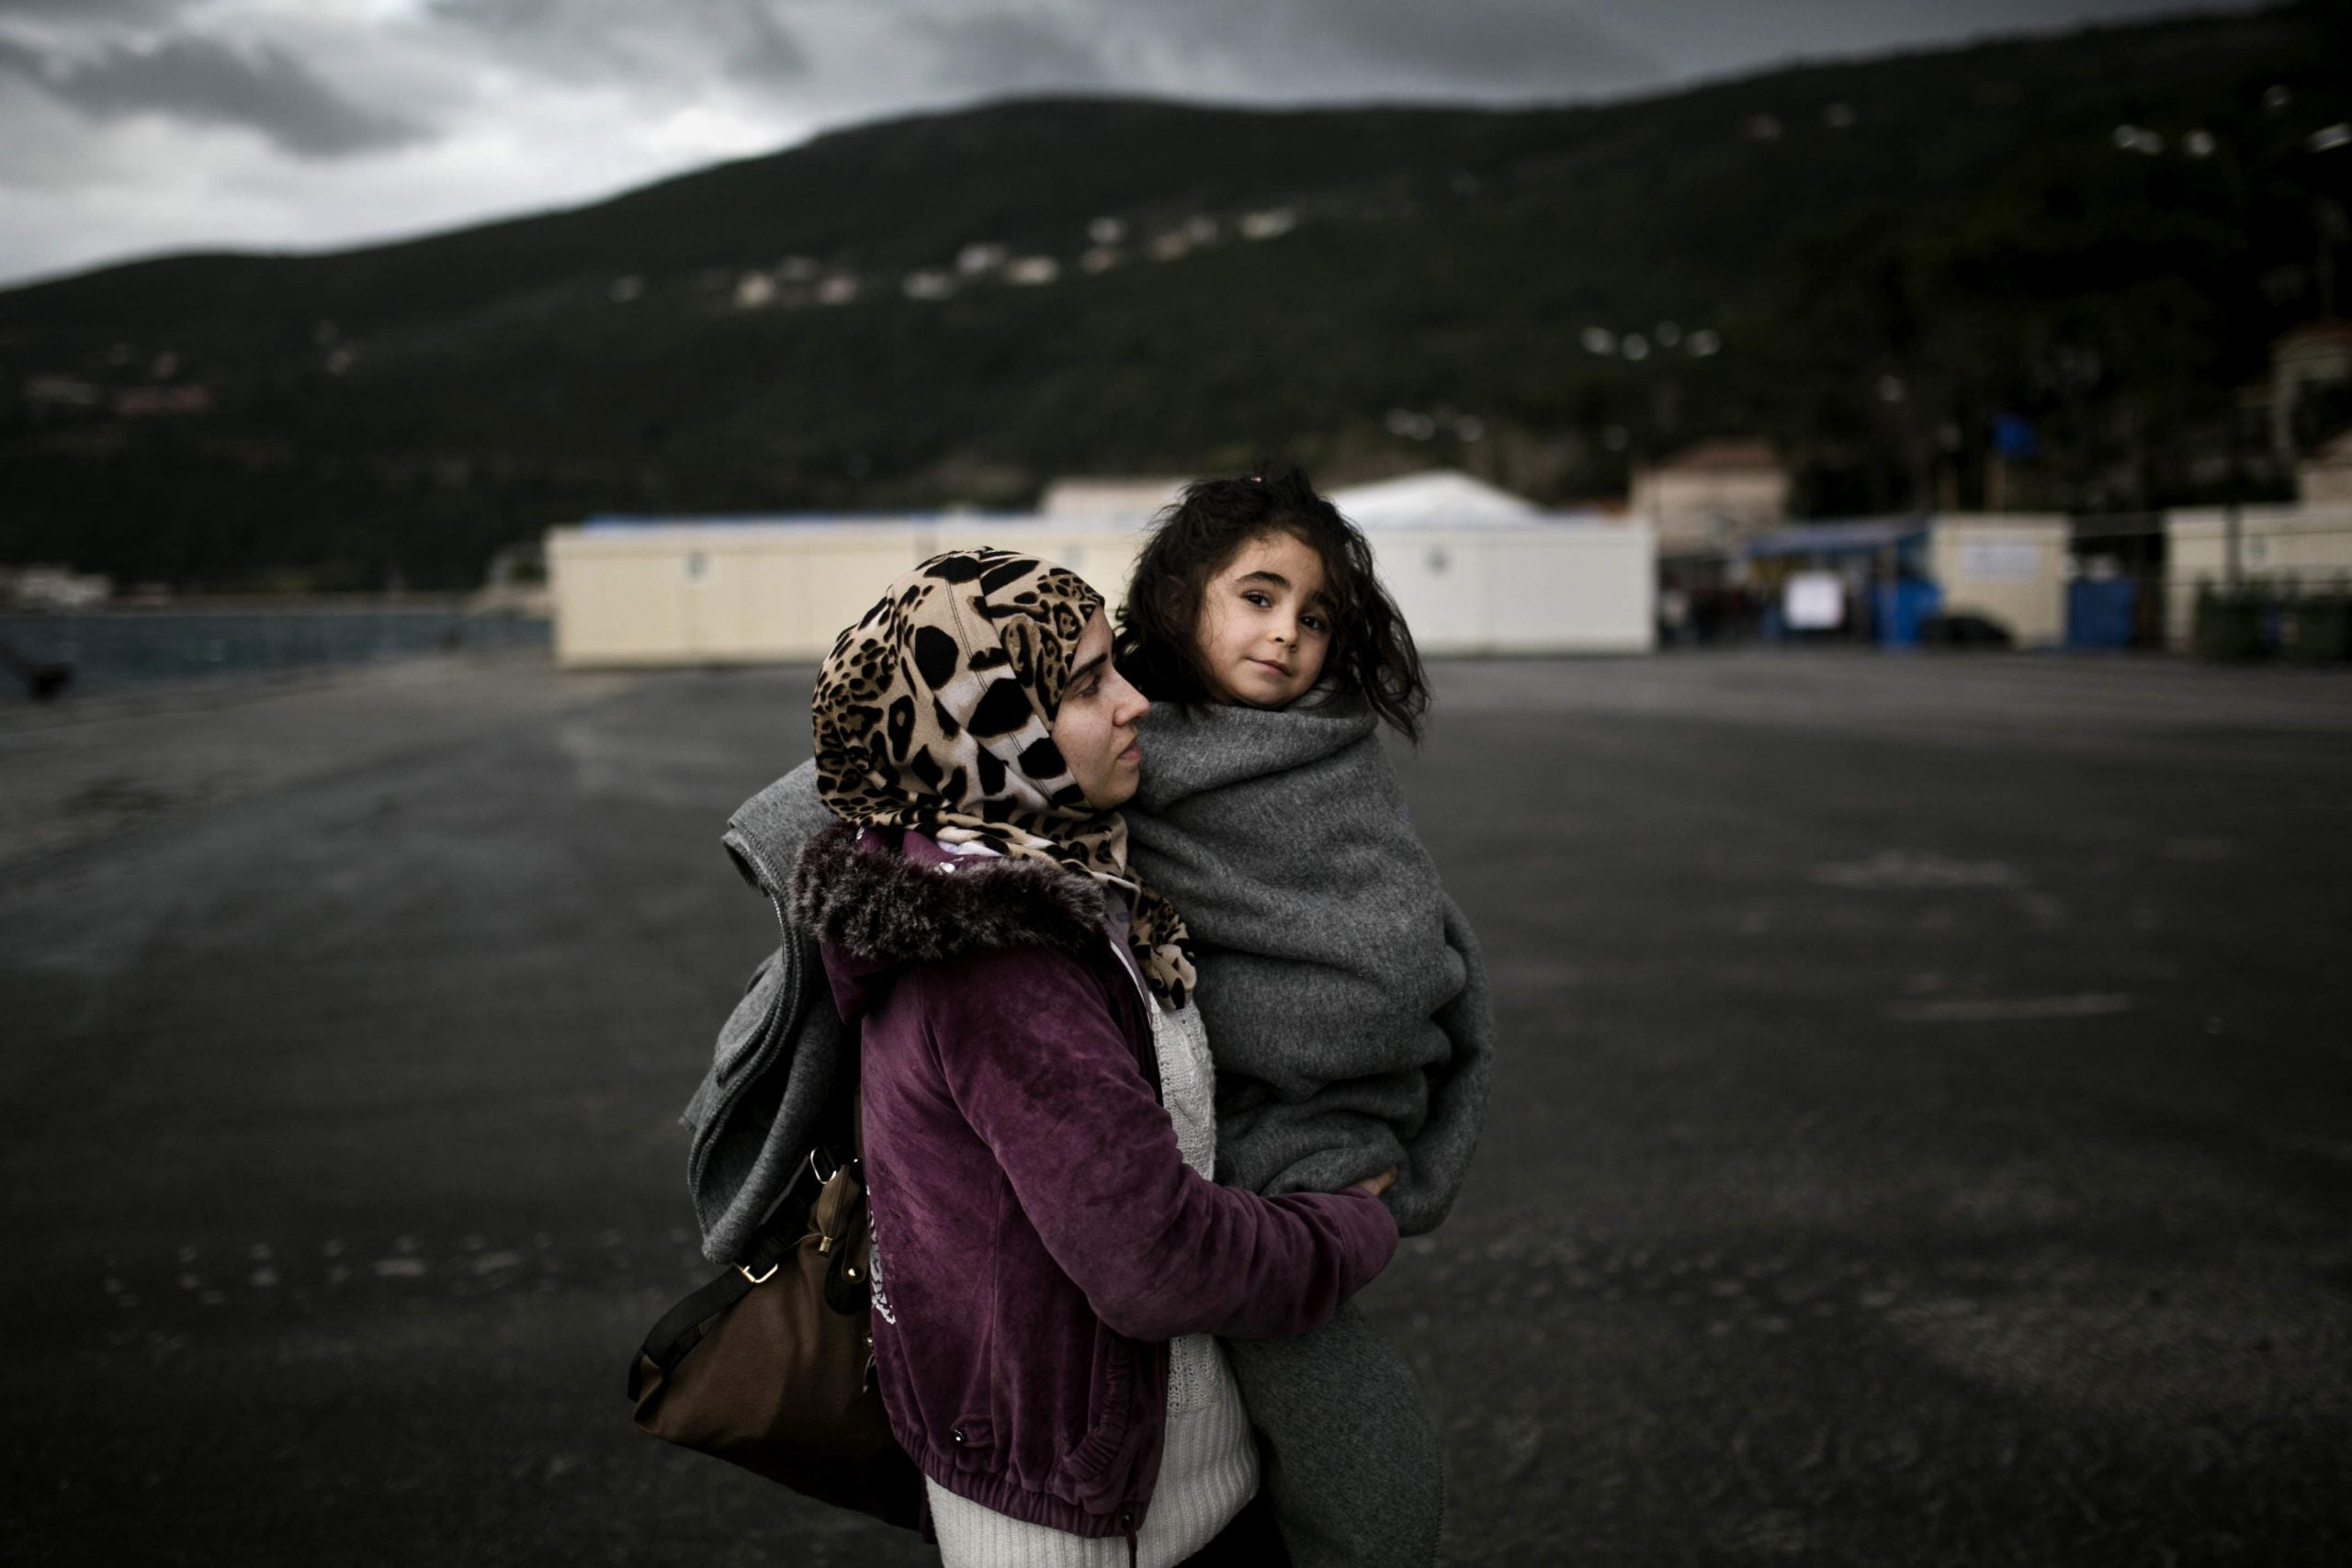 Another chapter in the government's sorry treatment of refugees